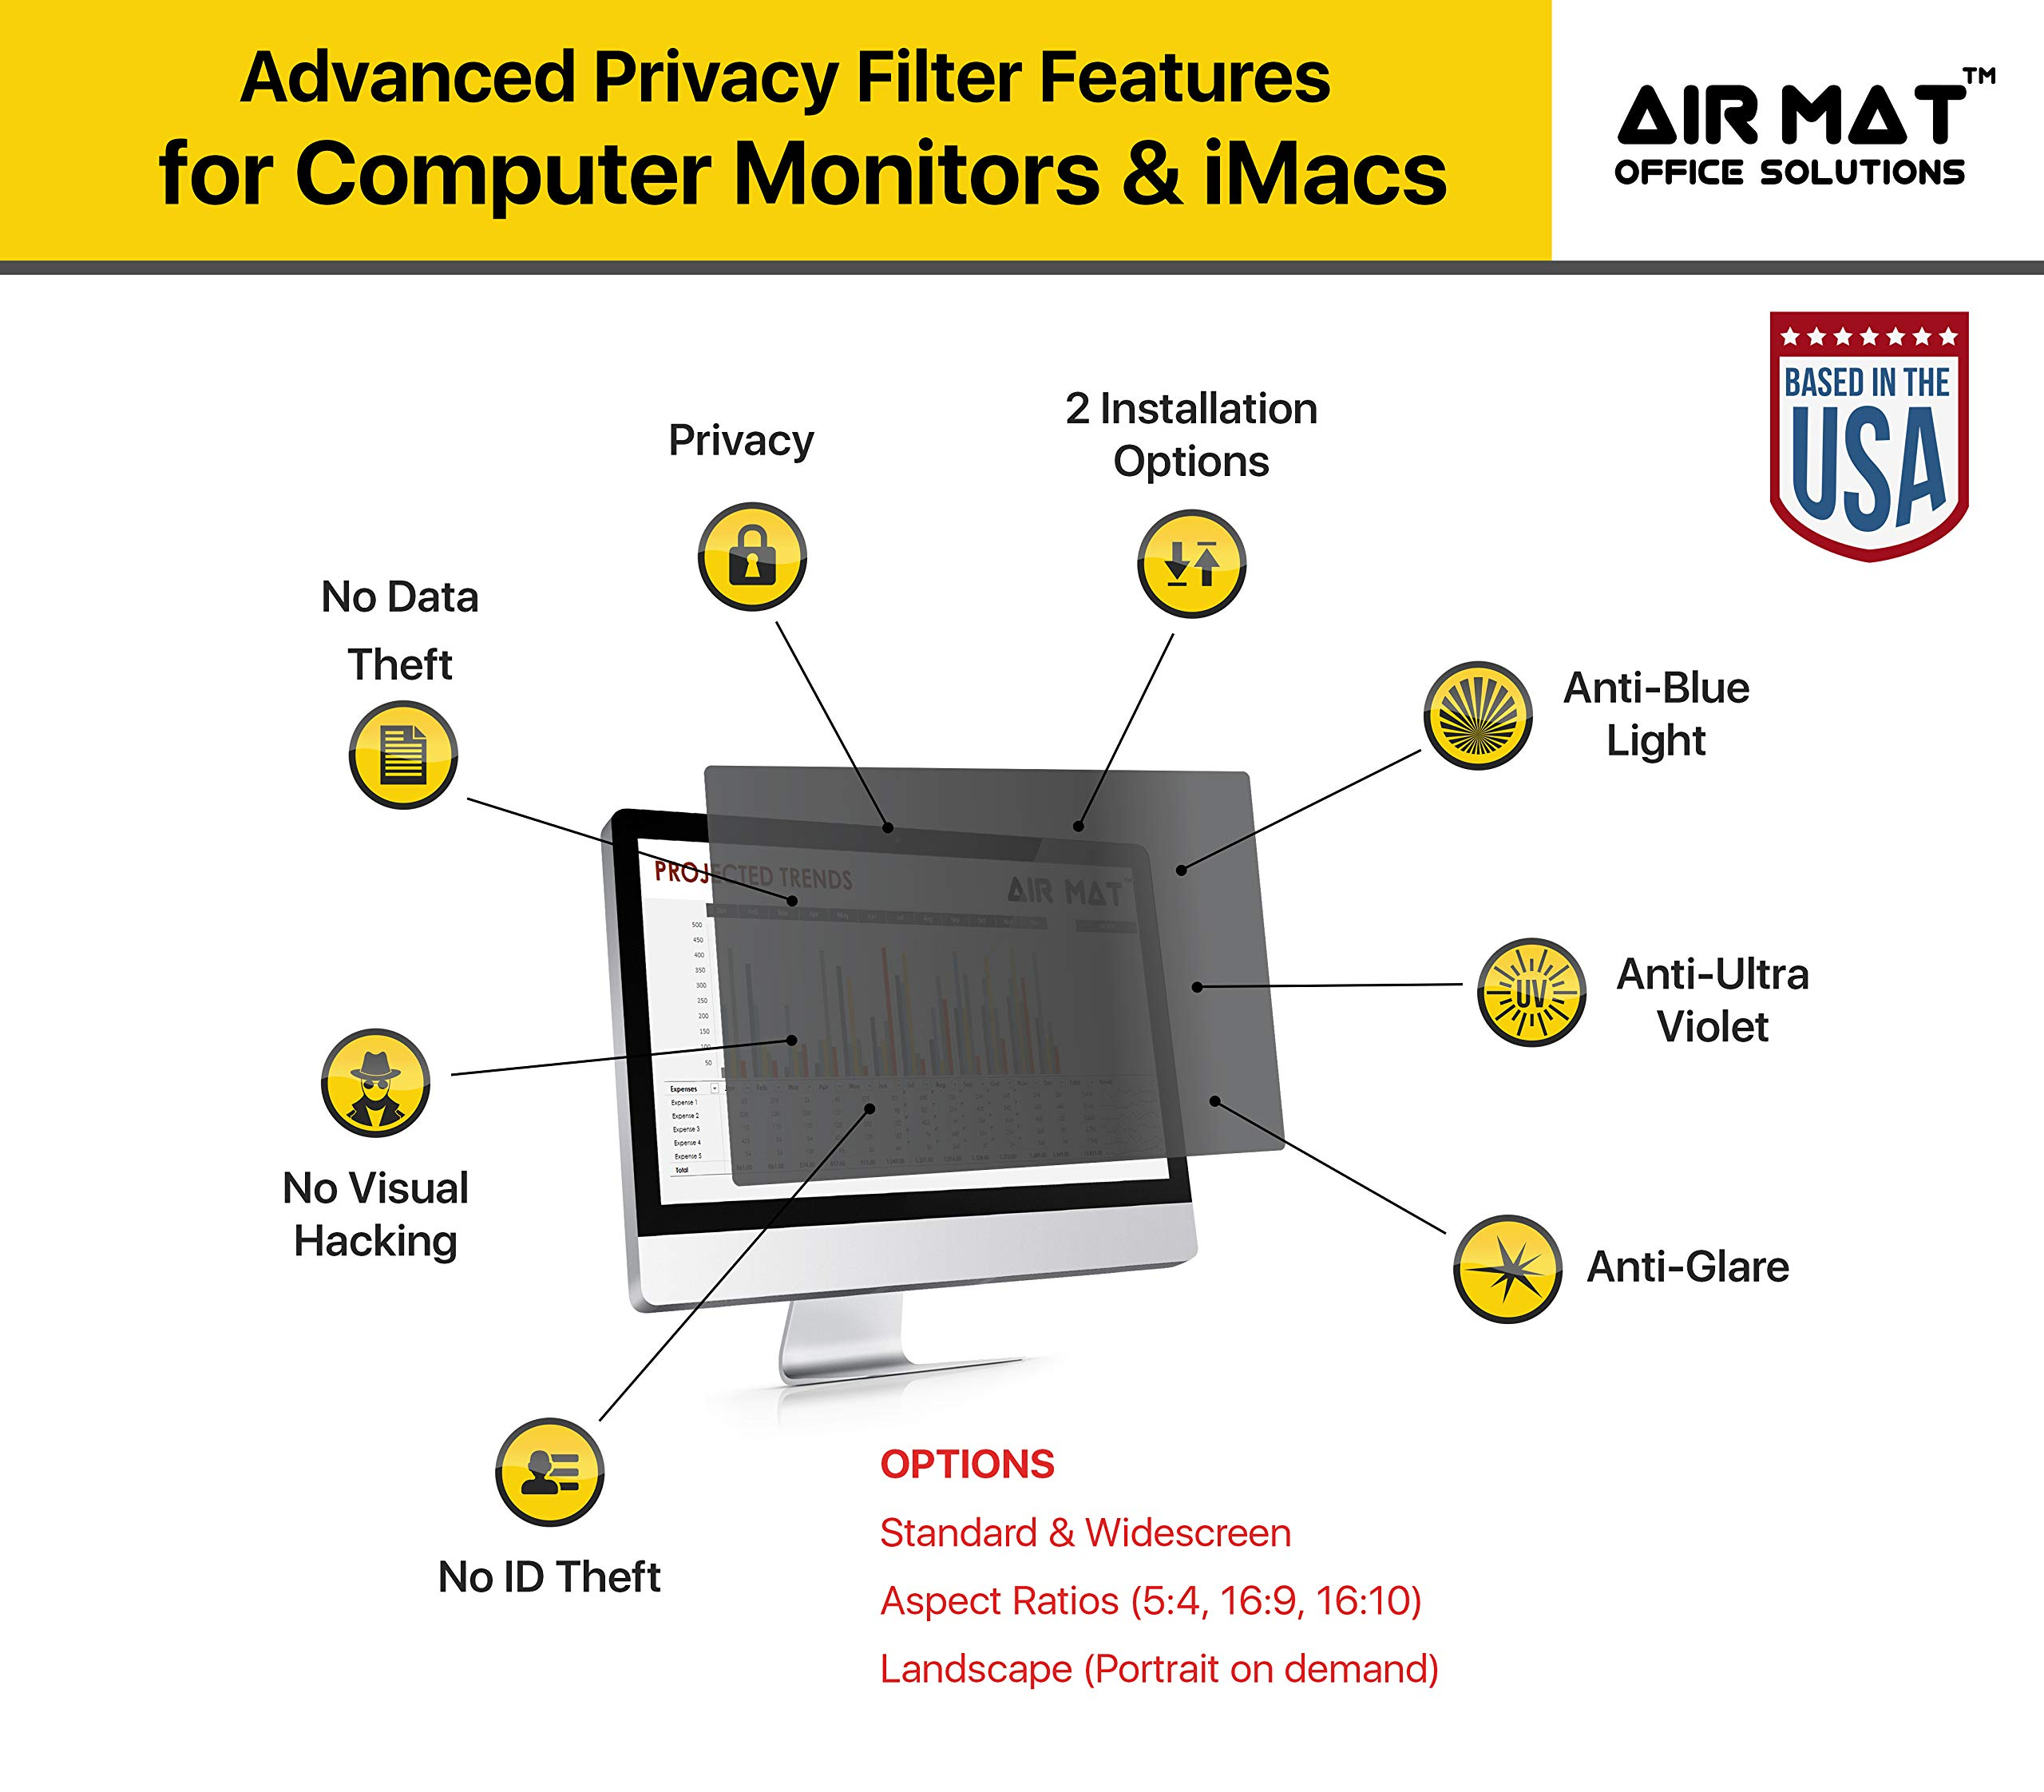 24 Inch Privacy Screen Filter for Widescreen Computer Monitor/LCD (16:10 Aspect Ratio). Original Anti Glare Protector Film for data confidentiality - (24'' W10) - MEASURE SCREEN CAREFULLY by Air Mat (Image #5)